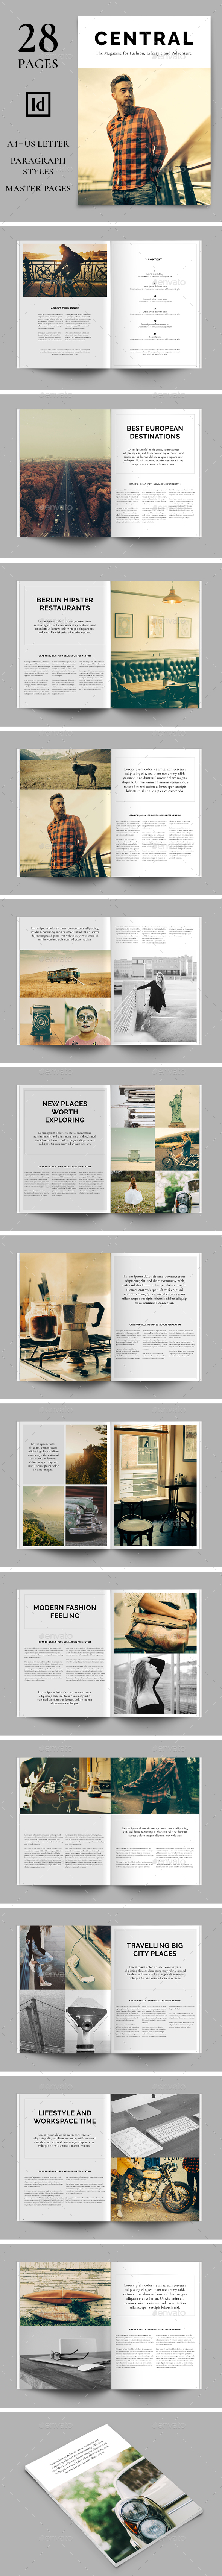 Central | The Magazine for Fashion, Lifestyle and Adventure - Magazines Print Templates